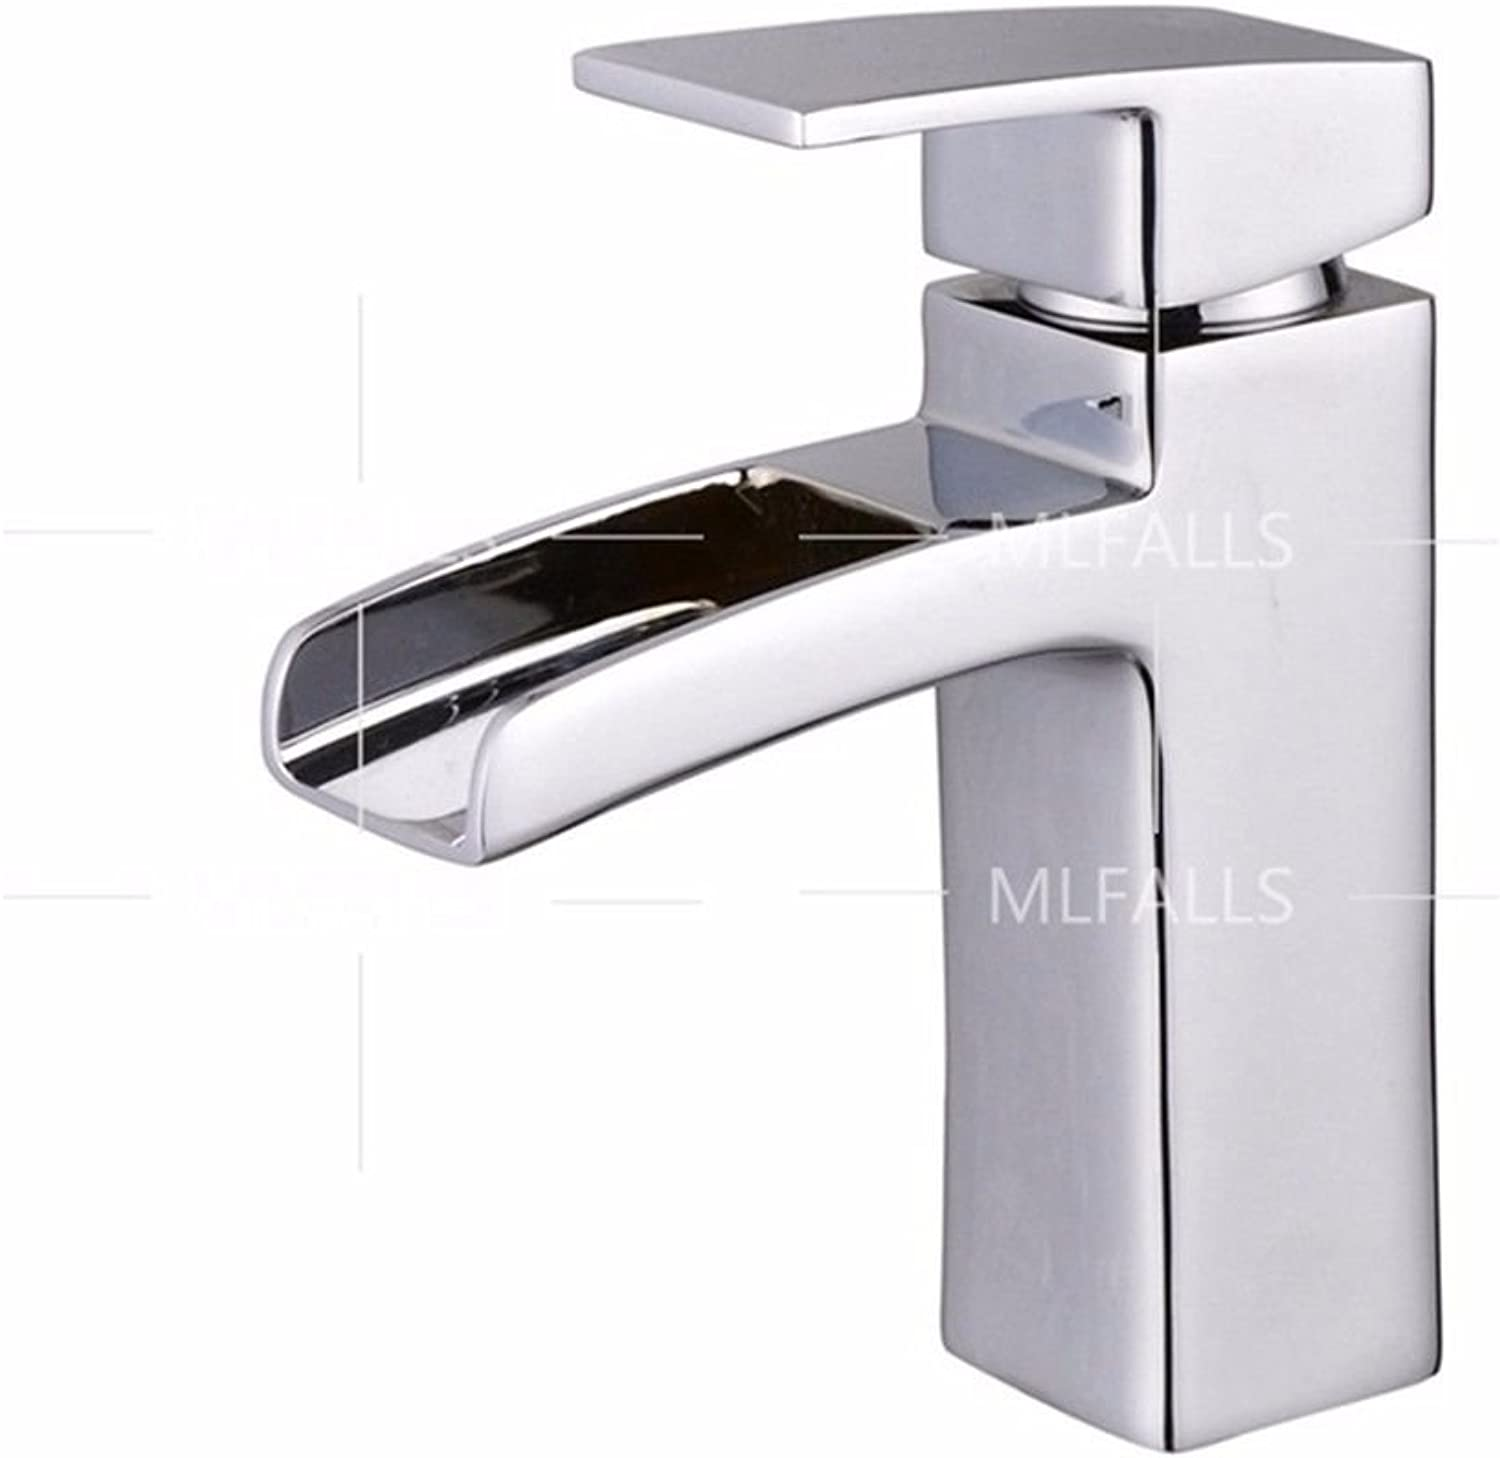 Hlluya Professional Sink Mixer Tap Kitchen Faucet Modern chrome plated brass, zinc alloy single handle waterfall water outlet basin Faucet